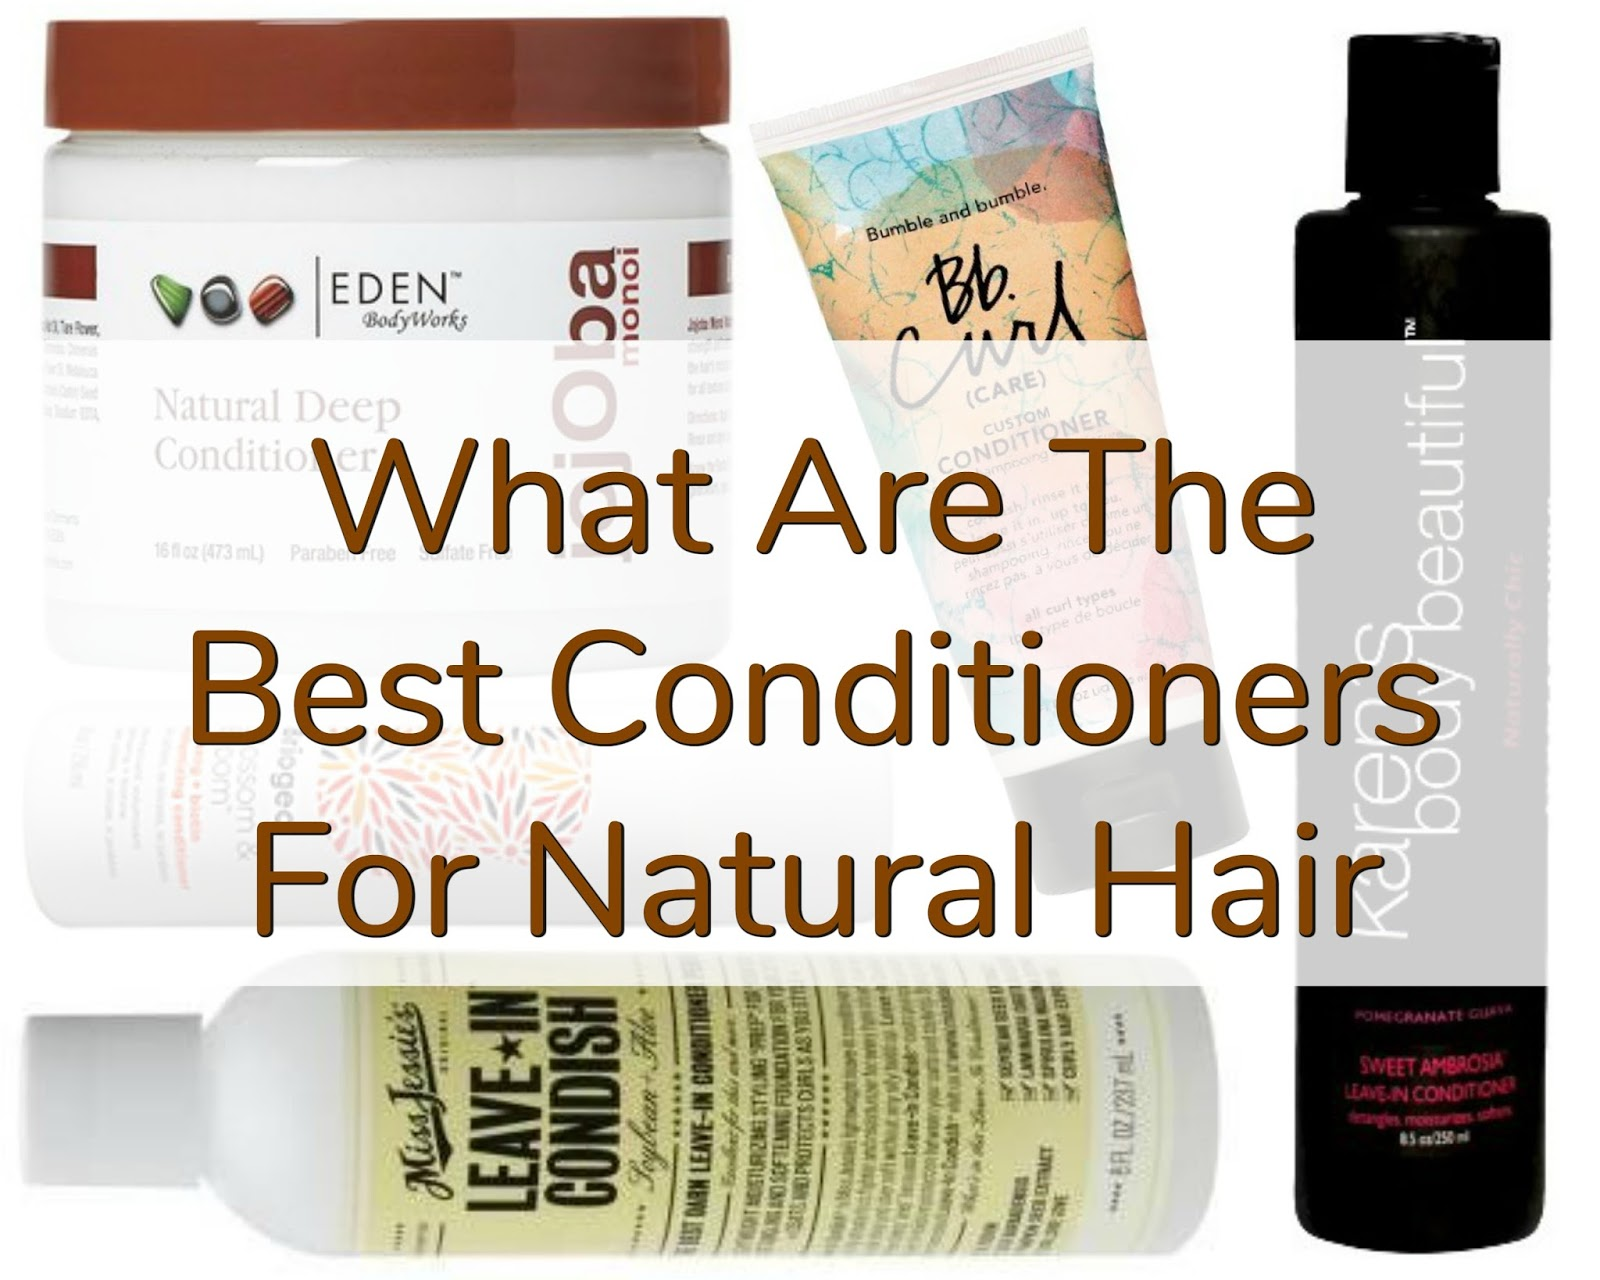 Click here to buy BUMBLE AND BUMBLE CURL CUSTOM CONDITIONER, a great conditioner for natural hair.